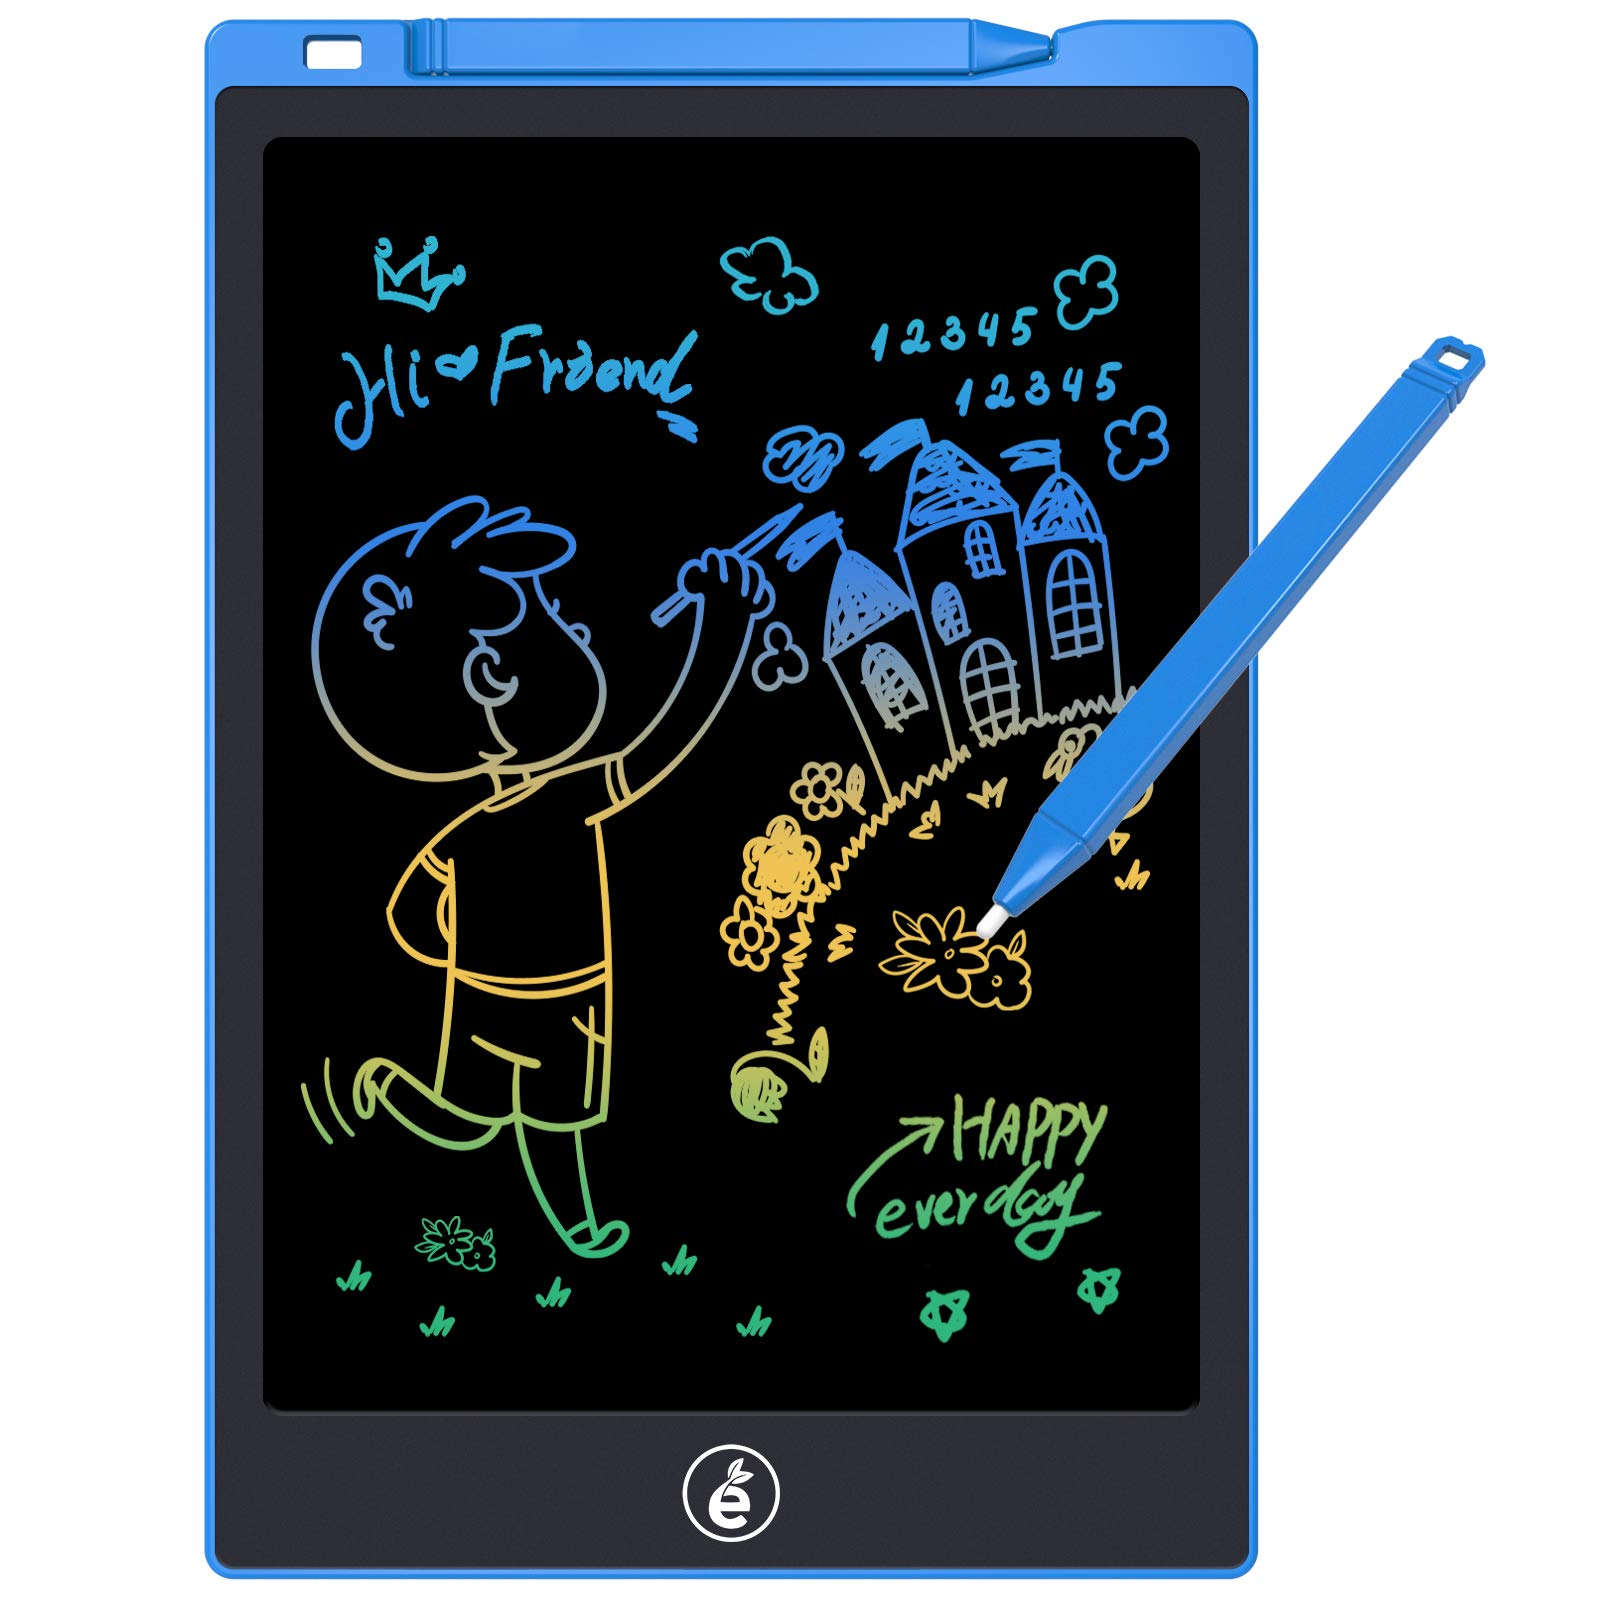 Original LCD Writing Portable Doodle Drawing Tablet Pad Durable Electronic Slate E-writer Digital Memo Pad Erasable Writing Board Learning toys and gadgets For Kids Babies & Adults - 8.5 inch - Monochrome